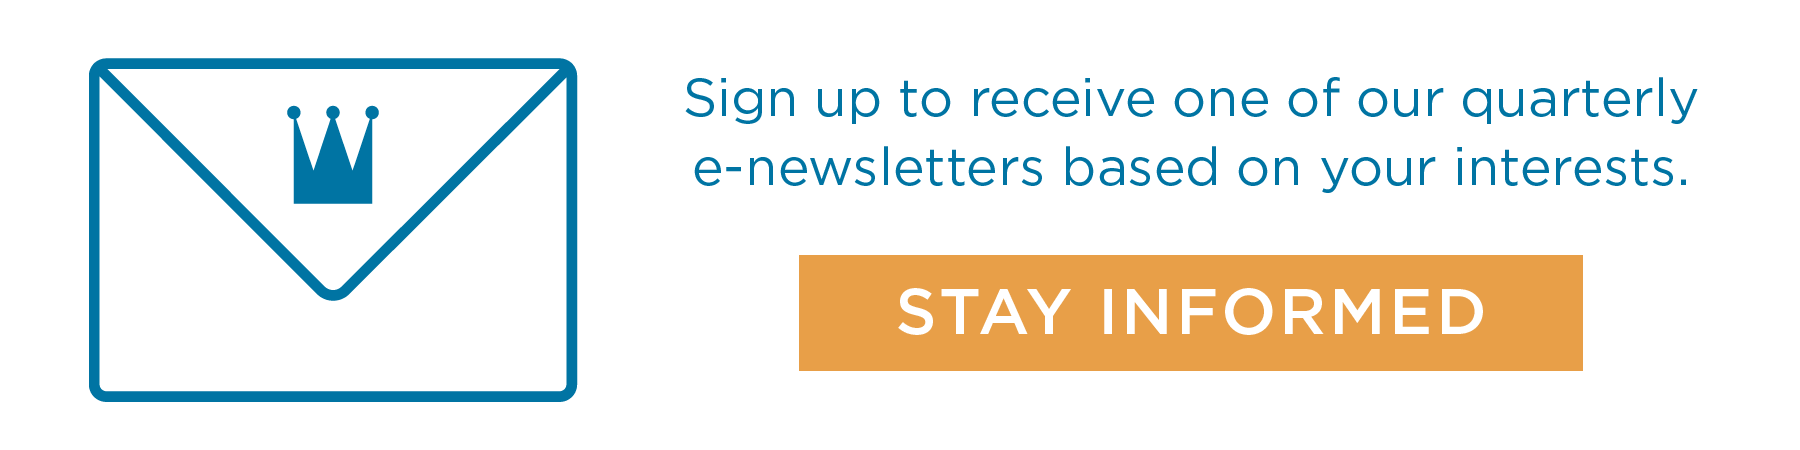 Click here to receive one of our quarterly newsletters.